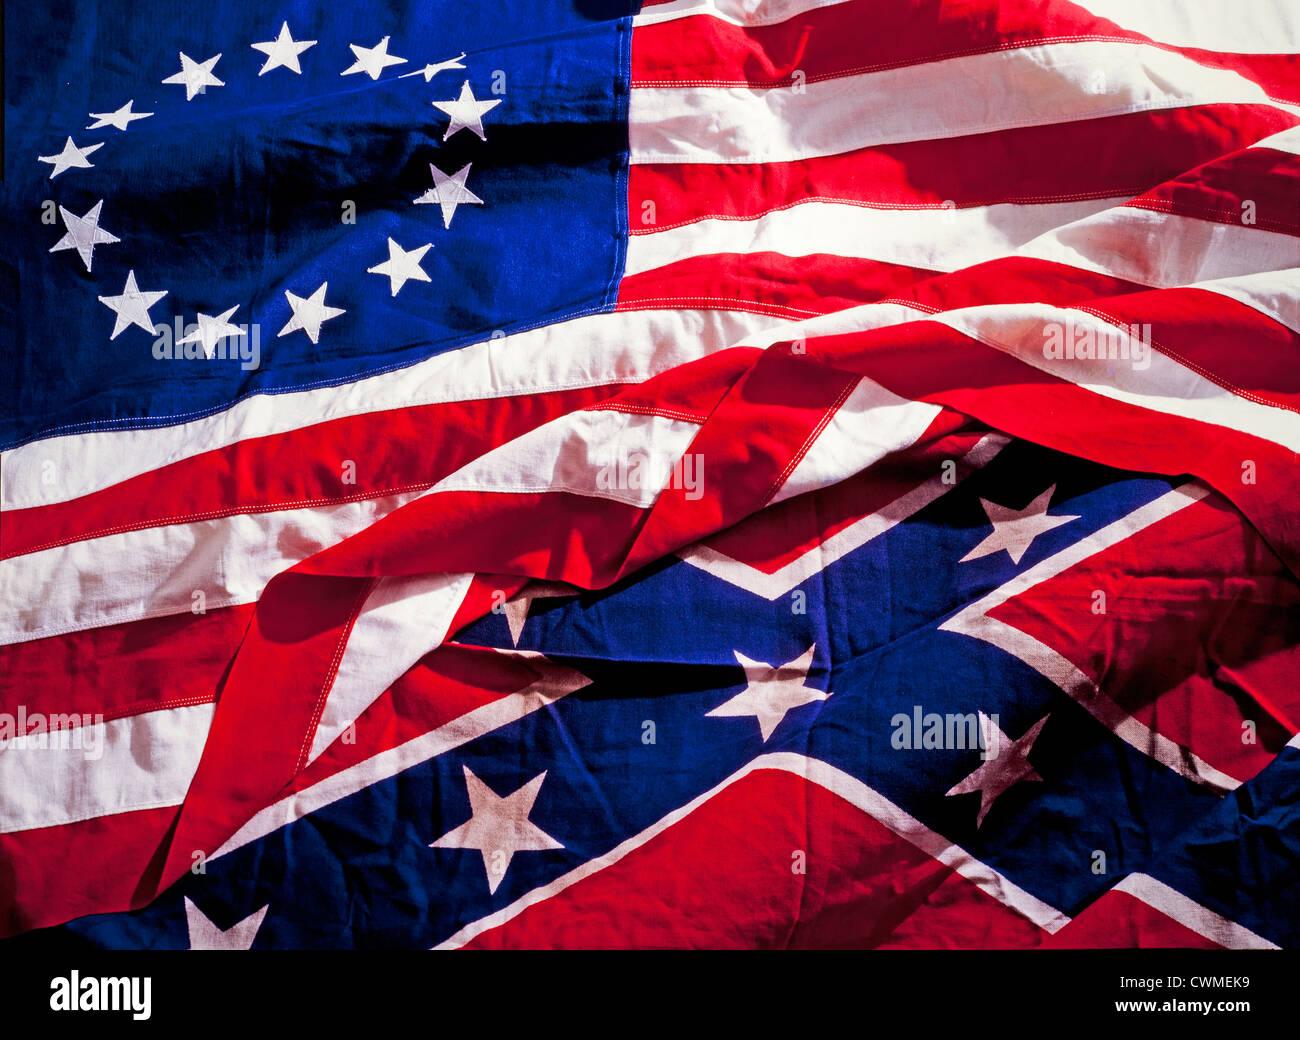 Civil War Flags North And South Confederate Union Stock Photo - north flags